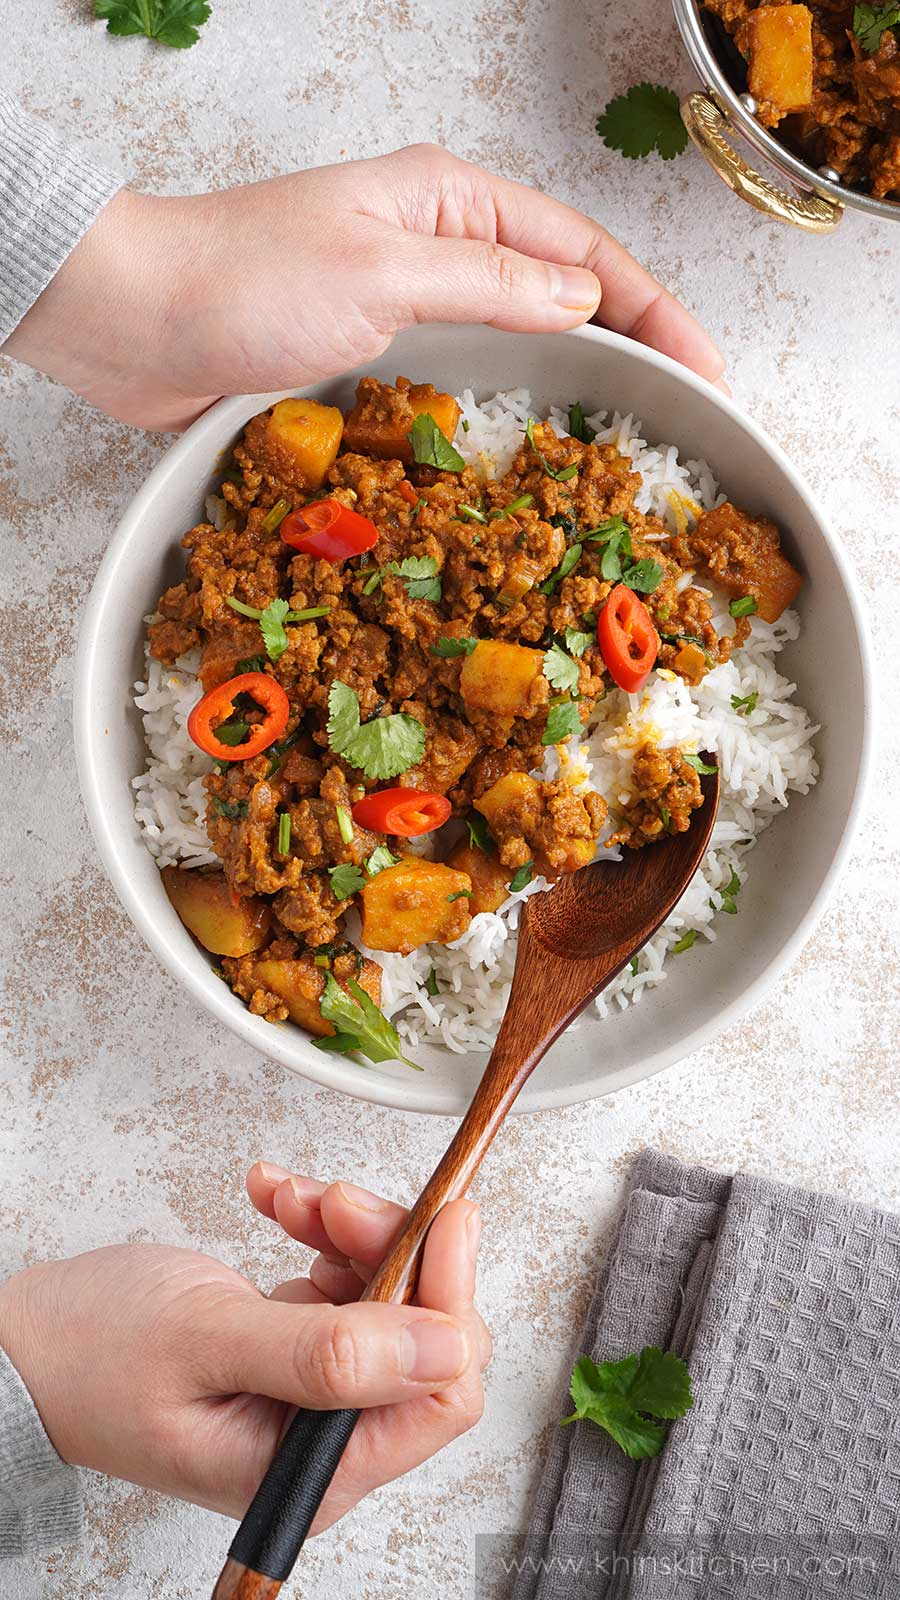 Ground beef curry,  cooked basmati rice in a cream colour bowl. Wooden spoon holding rice and minced beef.